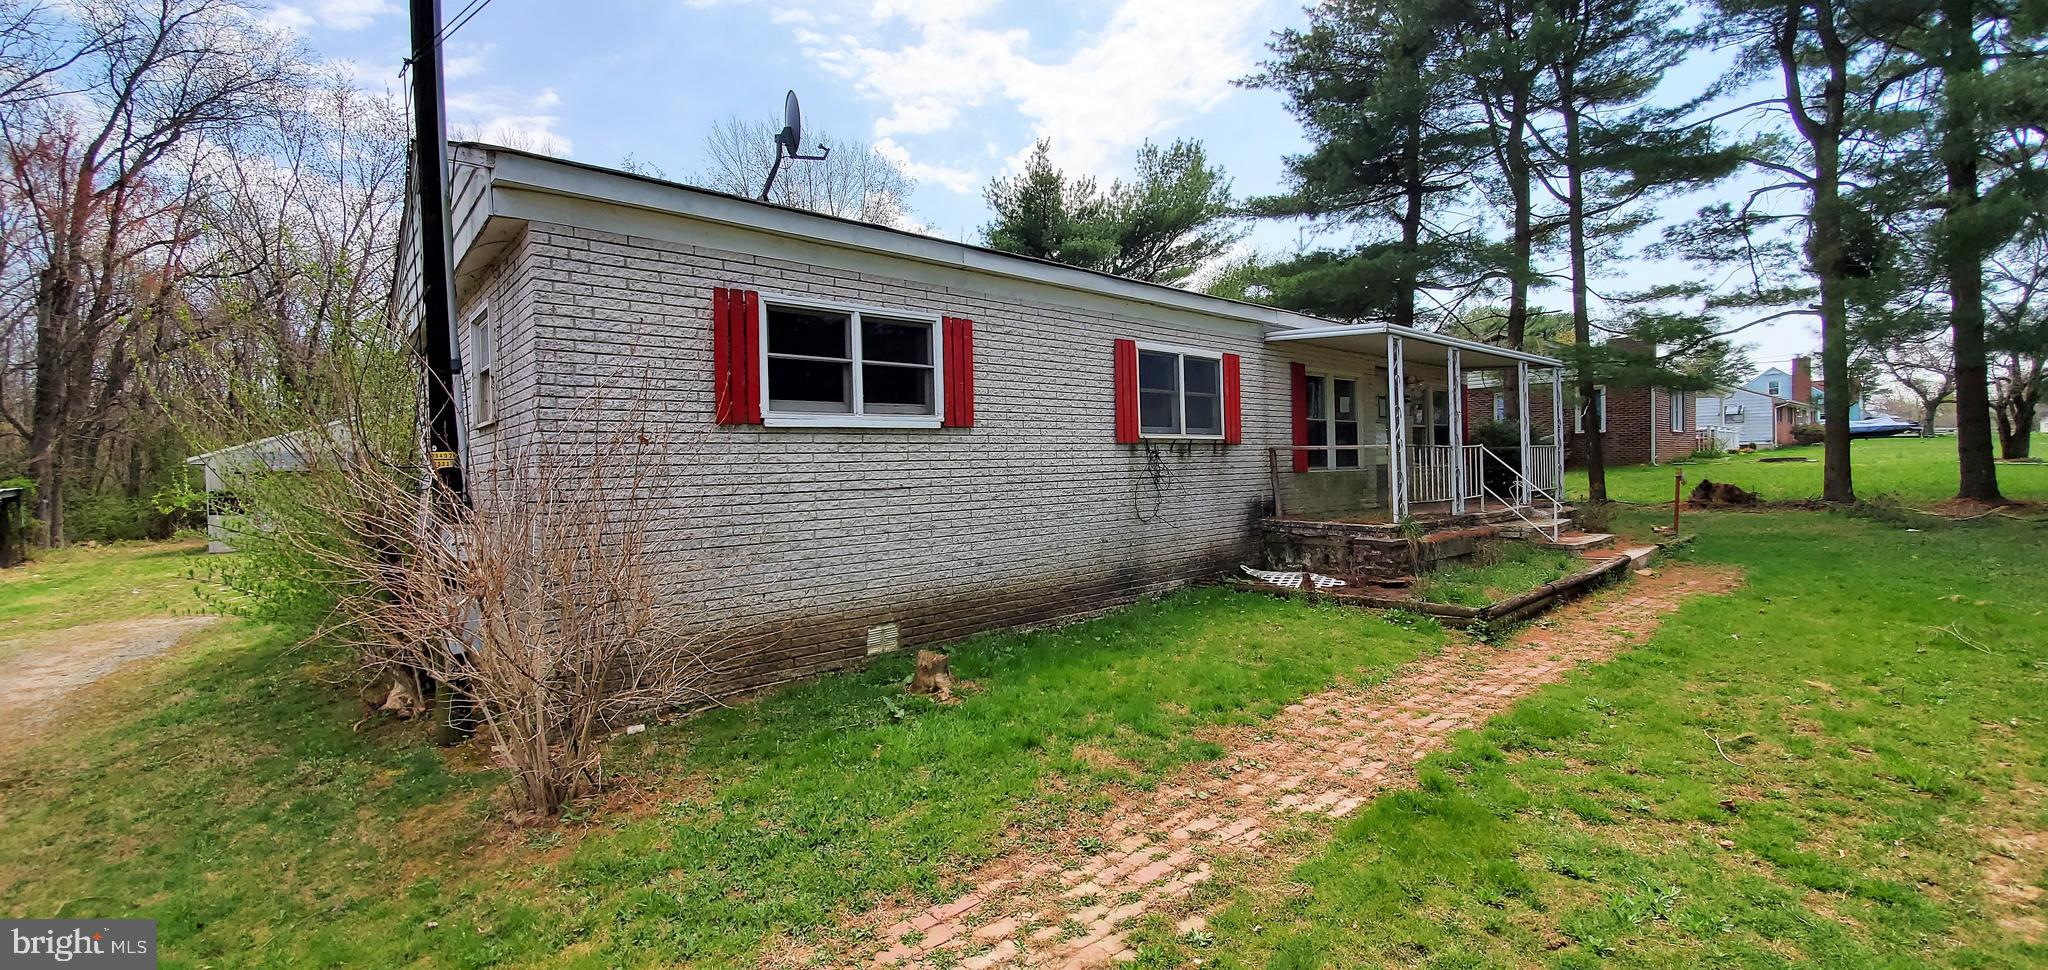 Now Available in Darlington.  2 Bedroom 1.5 Bath Home  with 2 car detached garage.